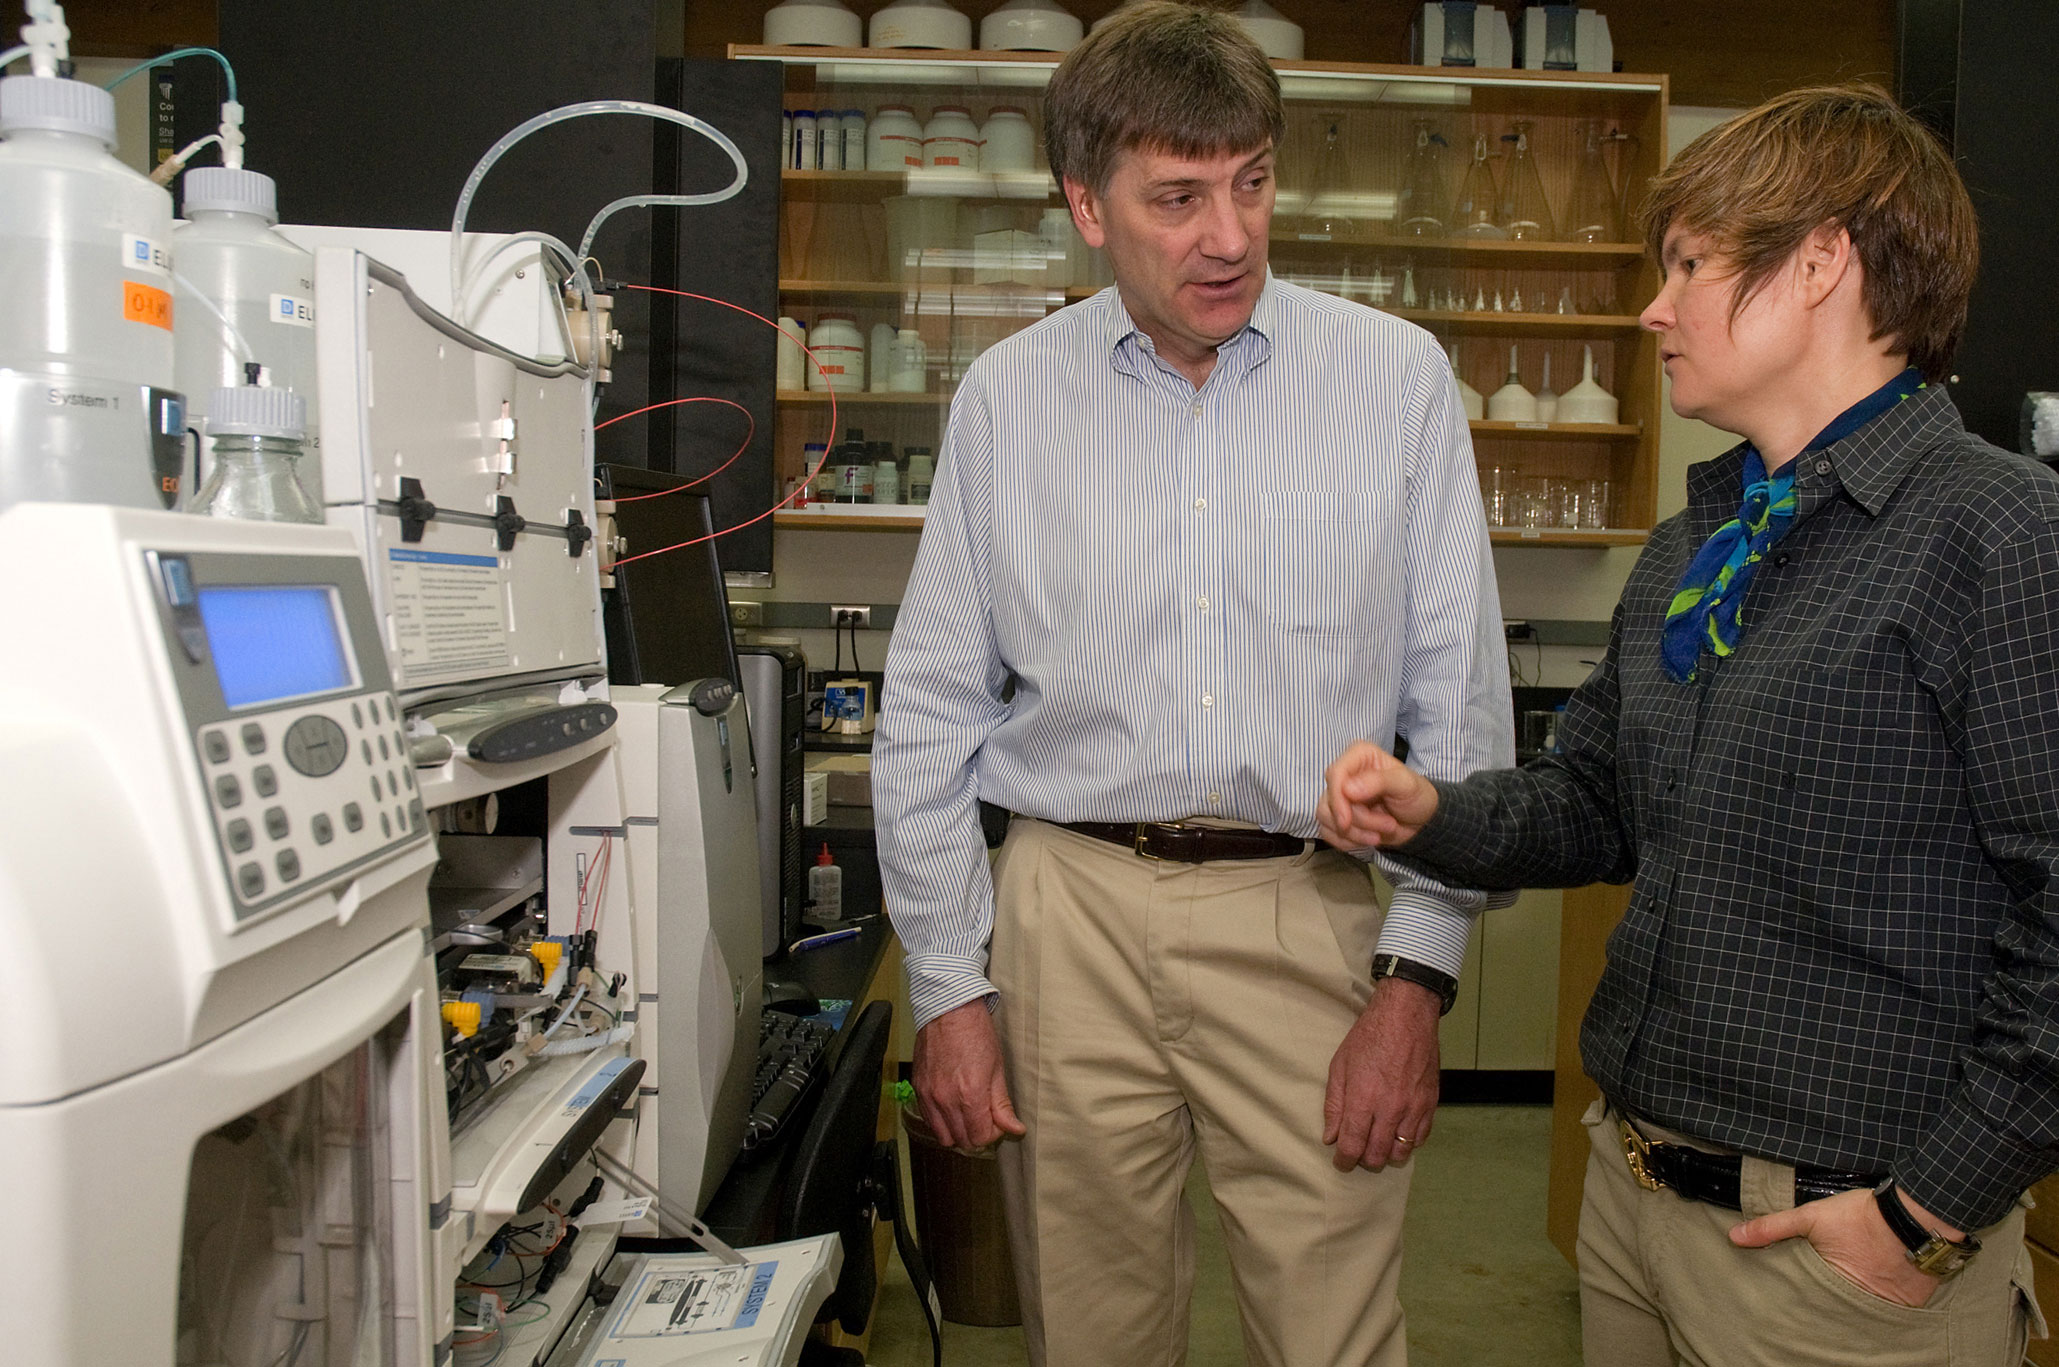 University of Washington faculty members Richard Gustafson and Renata Bura talk in the campus biofuels and bioresources laboratory about using a high-pressure liquid chromatographer to measure sugars extracted from biomass and to analyze the characteristics of fuels and chemicals made from those sugars.